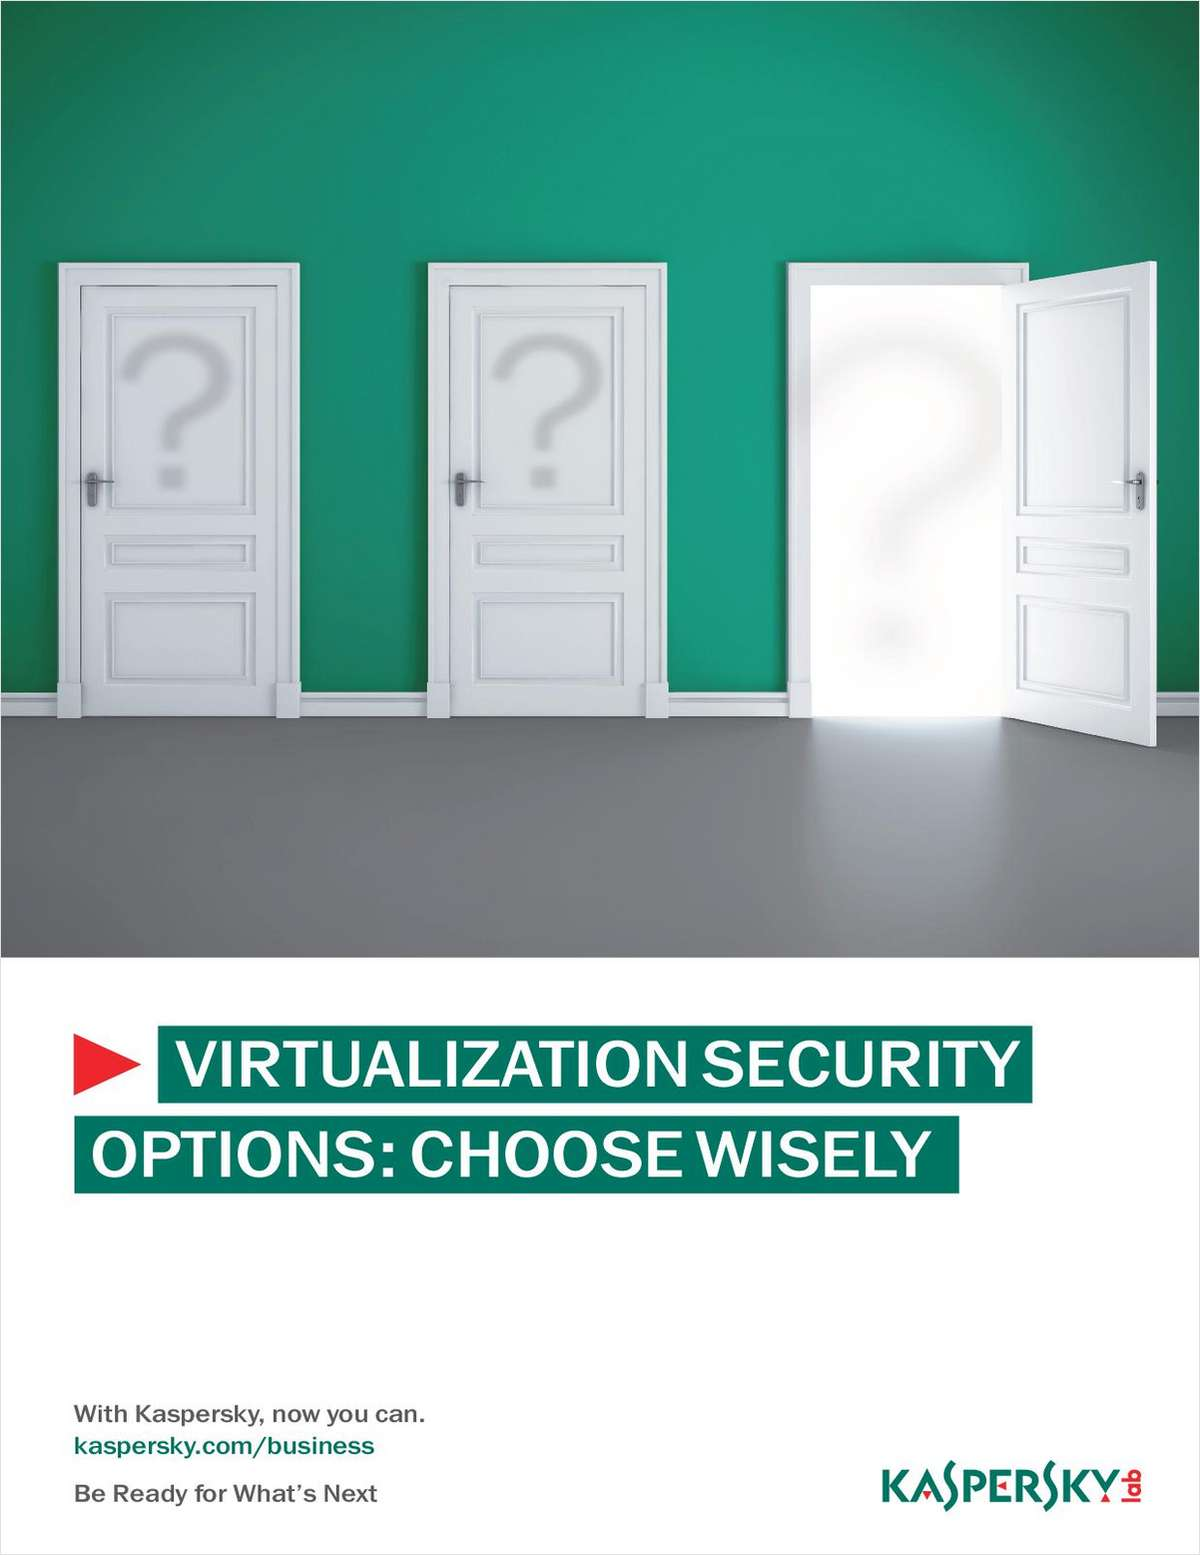 Virtualization Security: Know Your Options